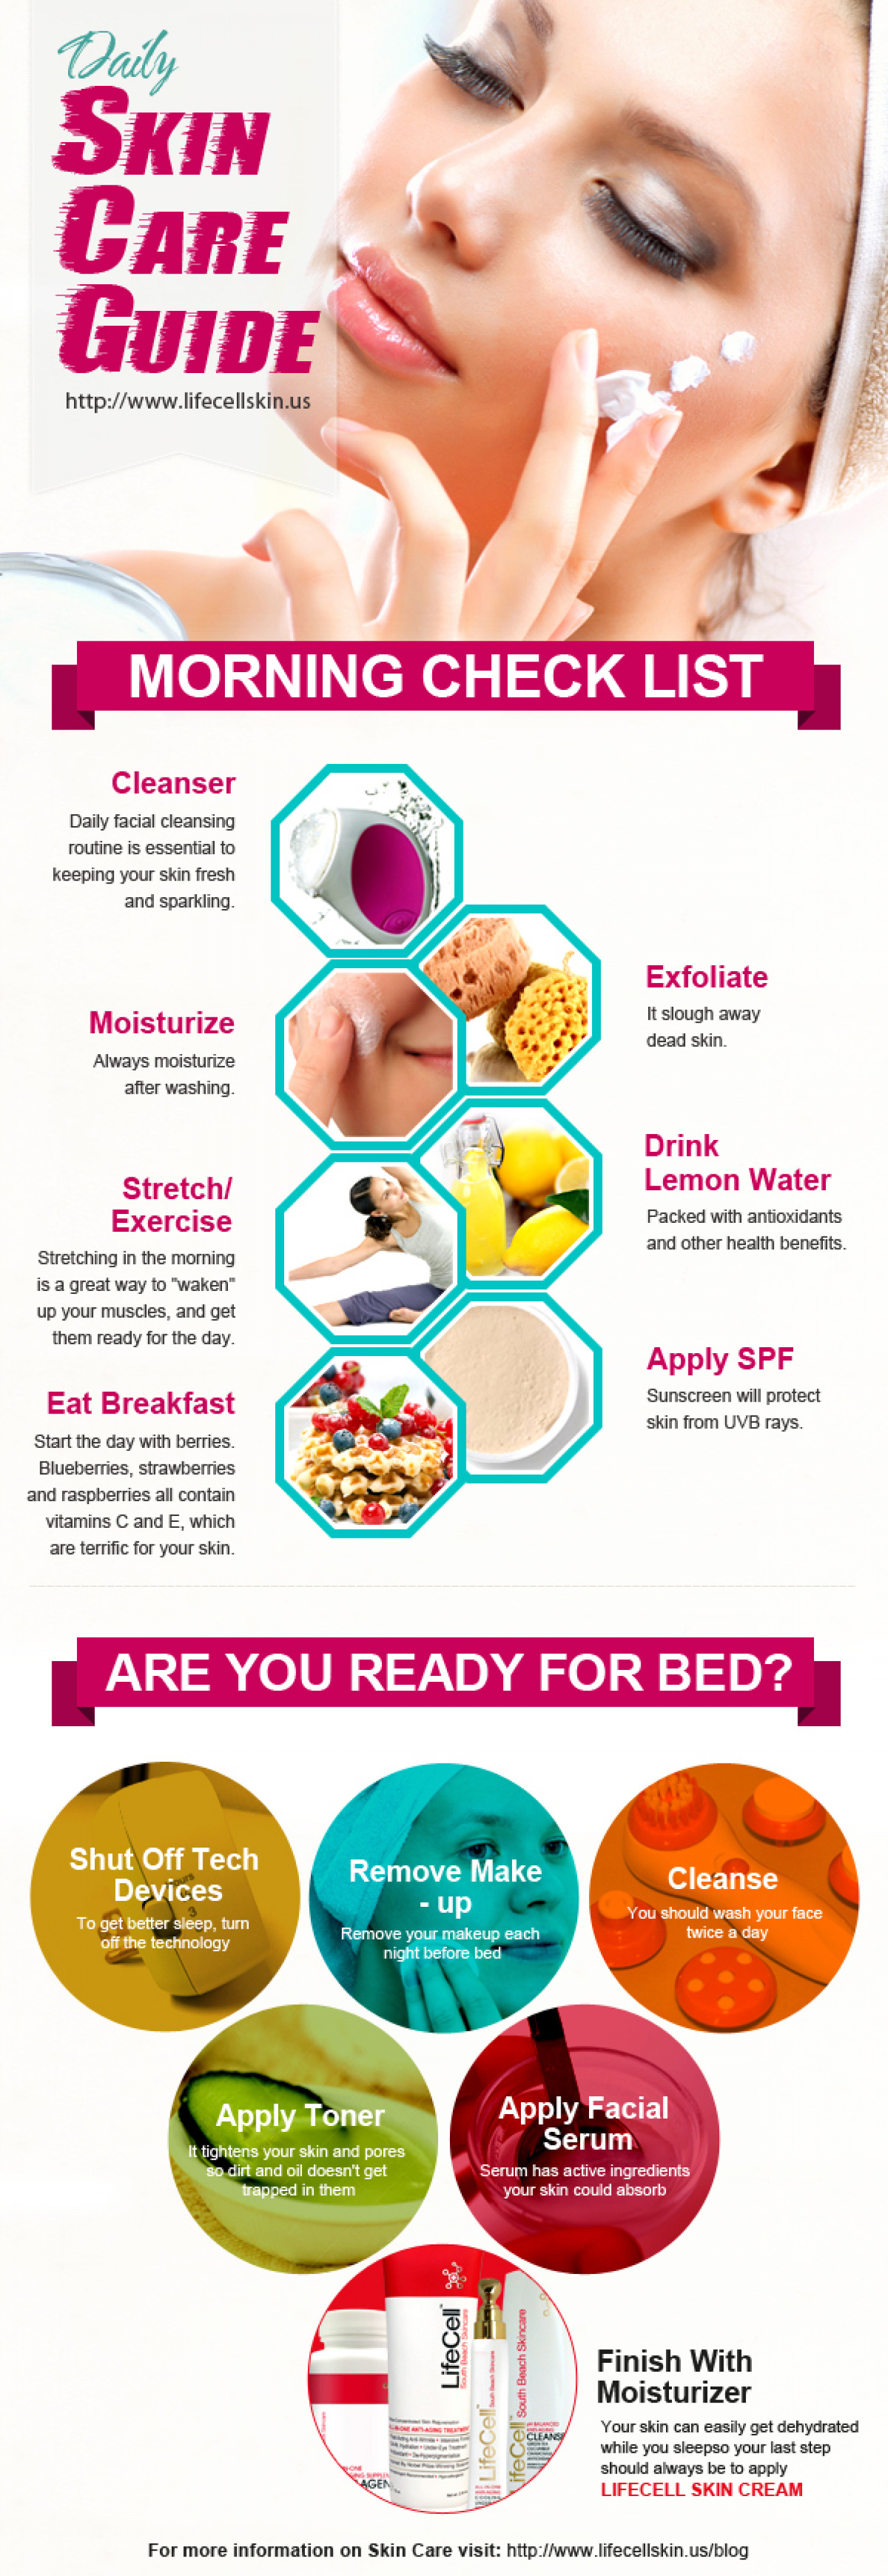 Daily Skin Care Guide